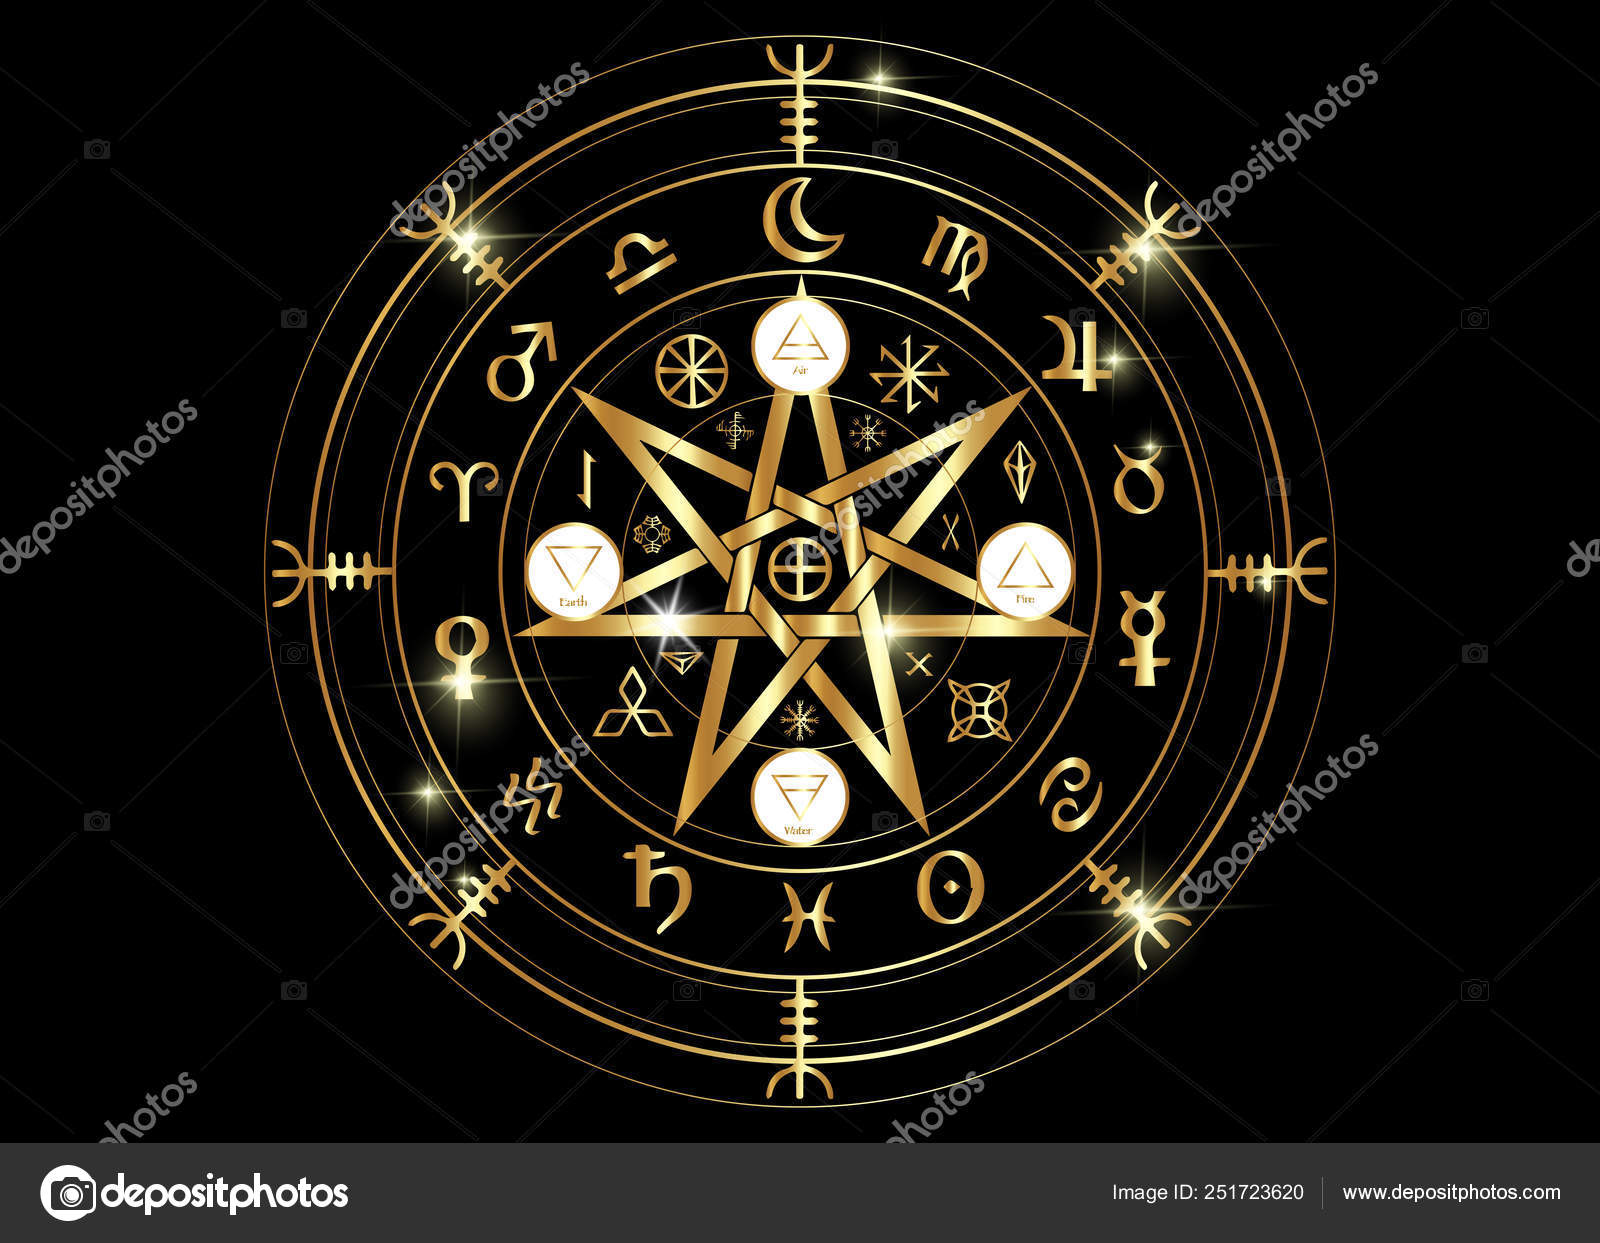 Witchcraft astrology and magic